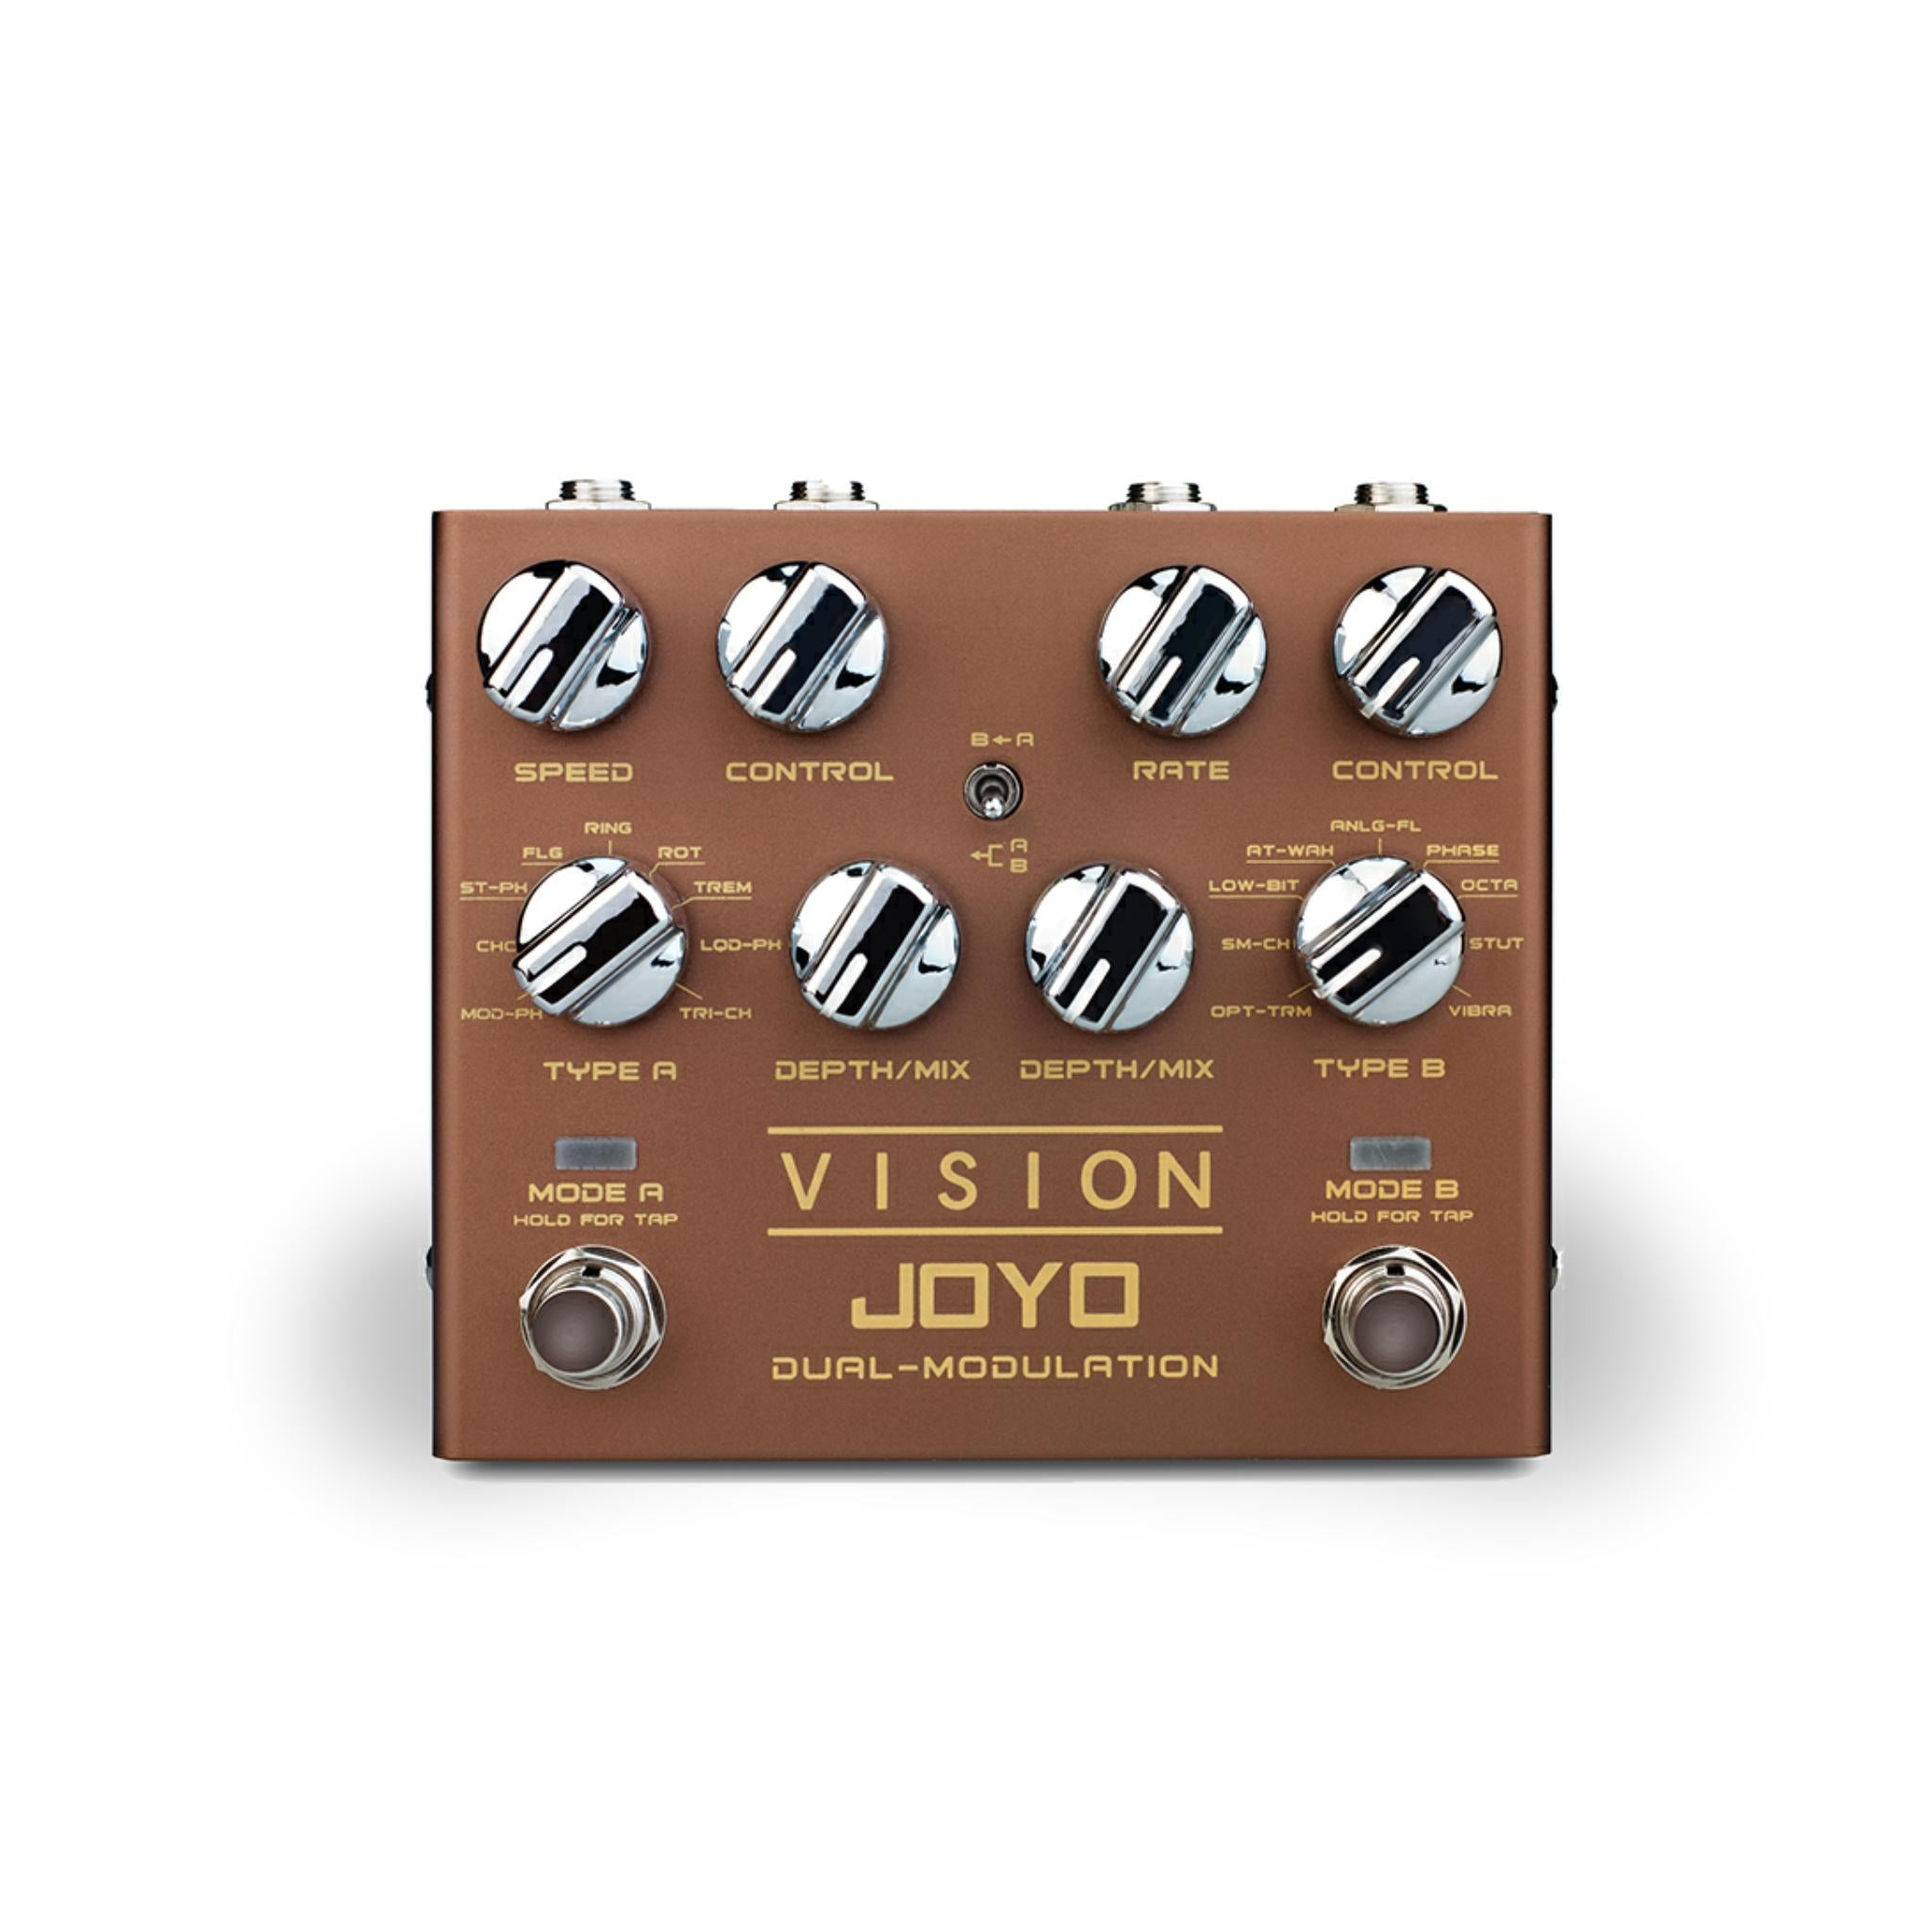 JOYO R-09 VISION Dual Modulation Effects Pedal